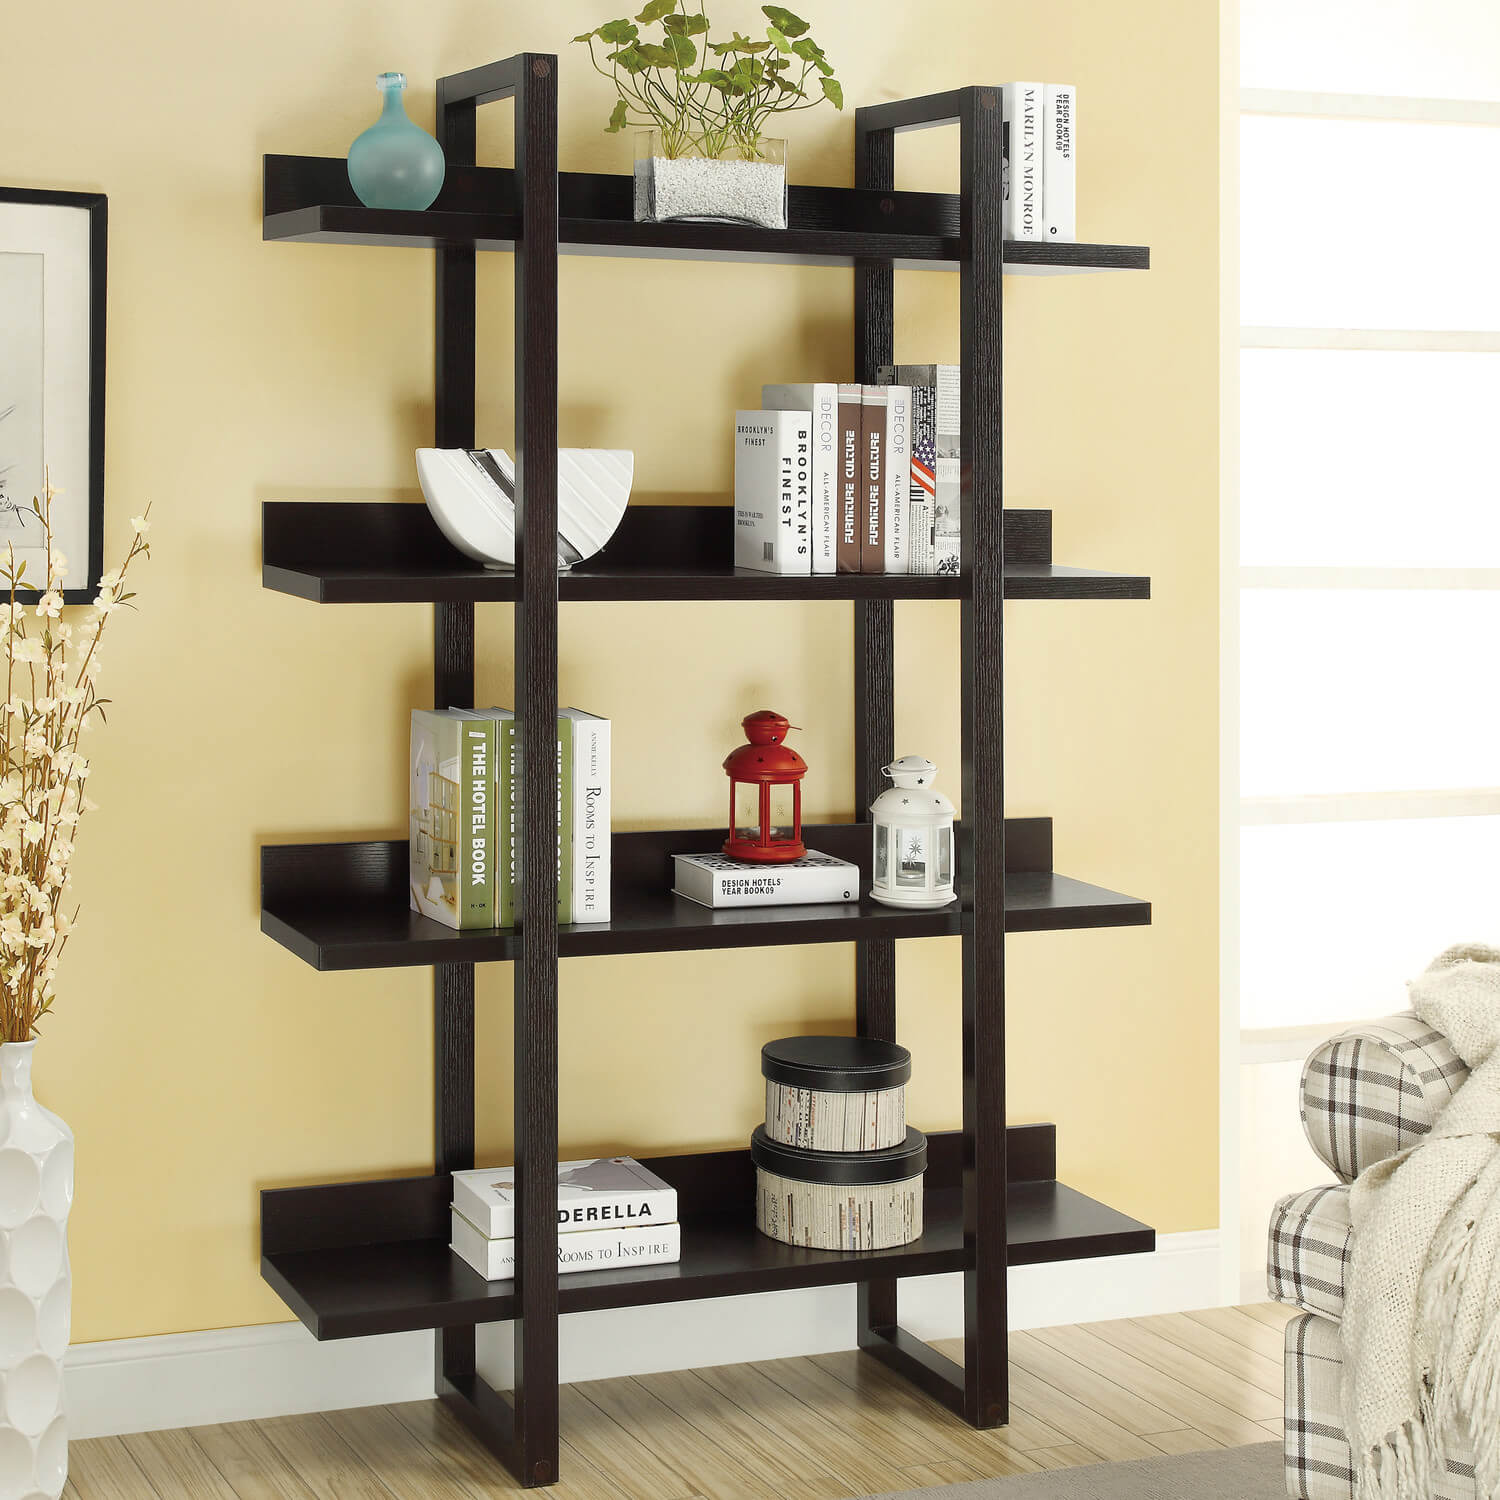 This free standing bookshelf is sleek and simple, and can fit in almost any living space. This is a nice pre-constructed, mobile, and clean bookshelf.